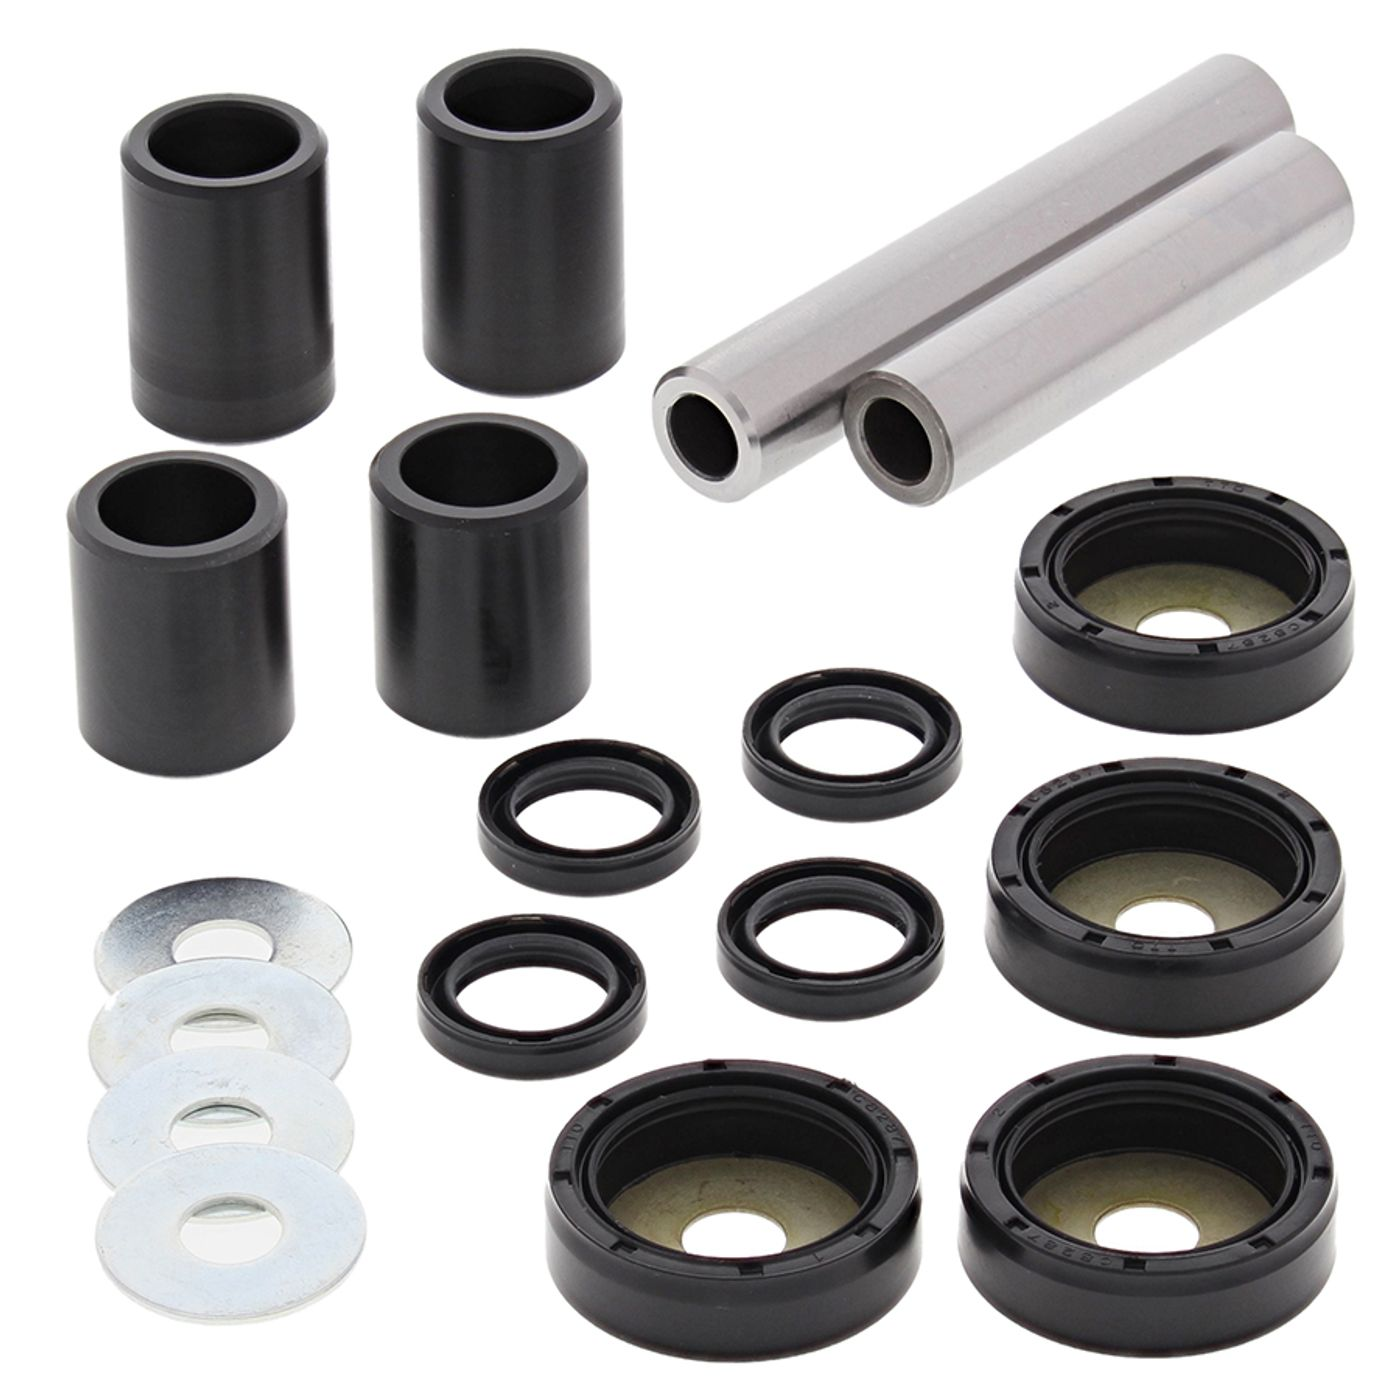 wrp rear ind. knuckle kits - WRP501075-K image